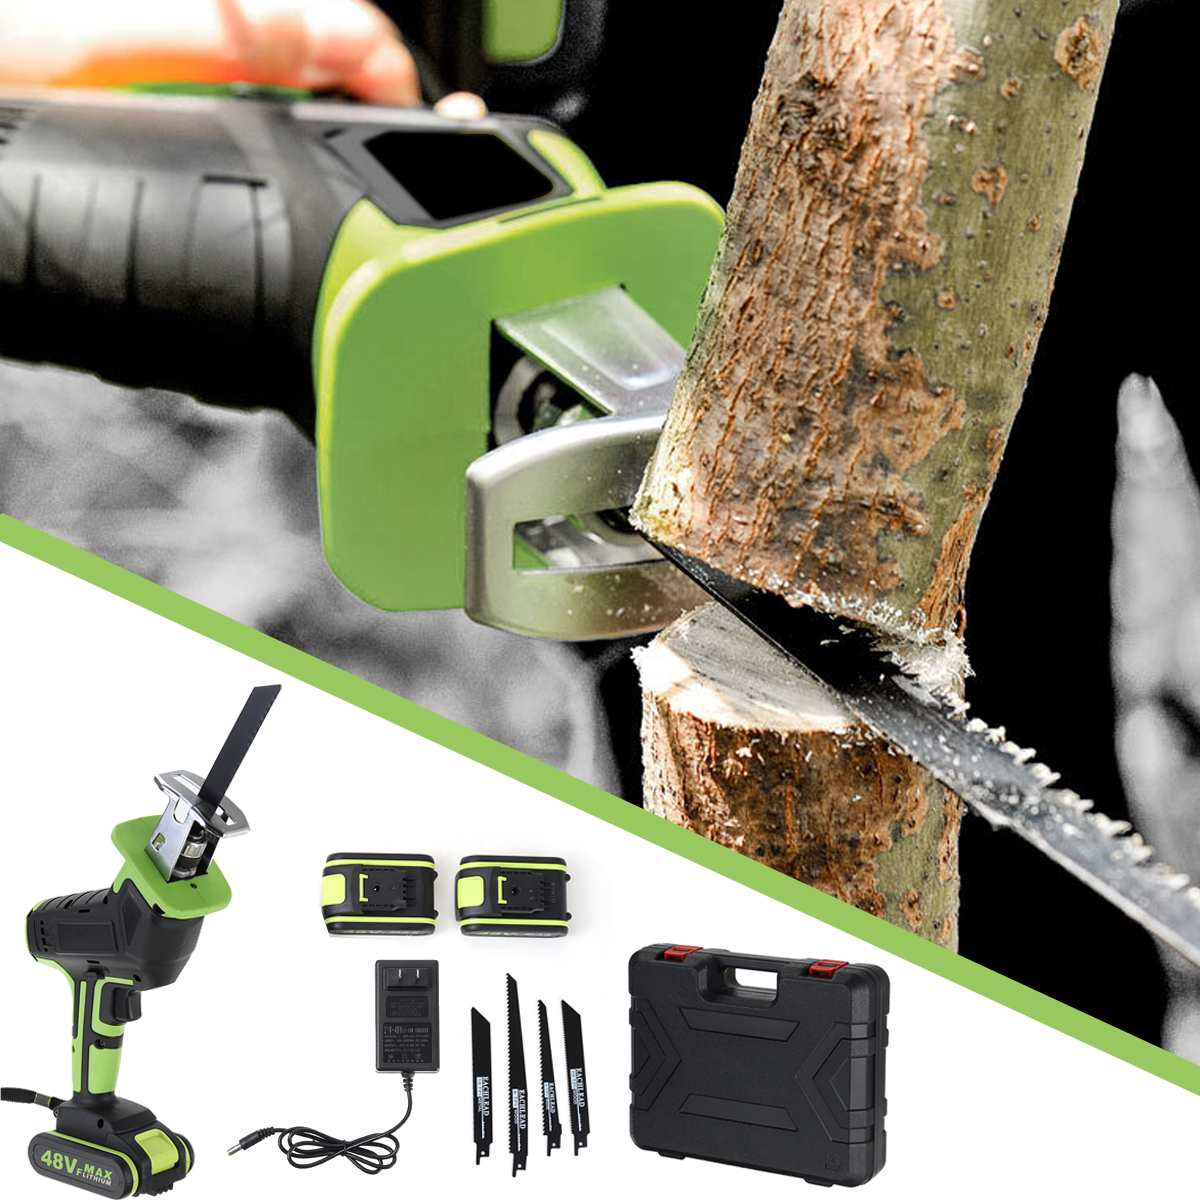 48V 2 Saw Tool Drillpro Reciprocating New Cutters Woodworking Saw 1 Battery Portable Metal  4 Cordless With Wood Cutting Blades